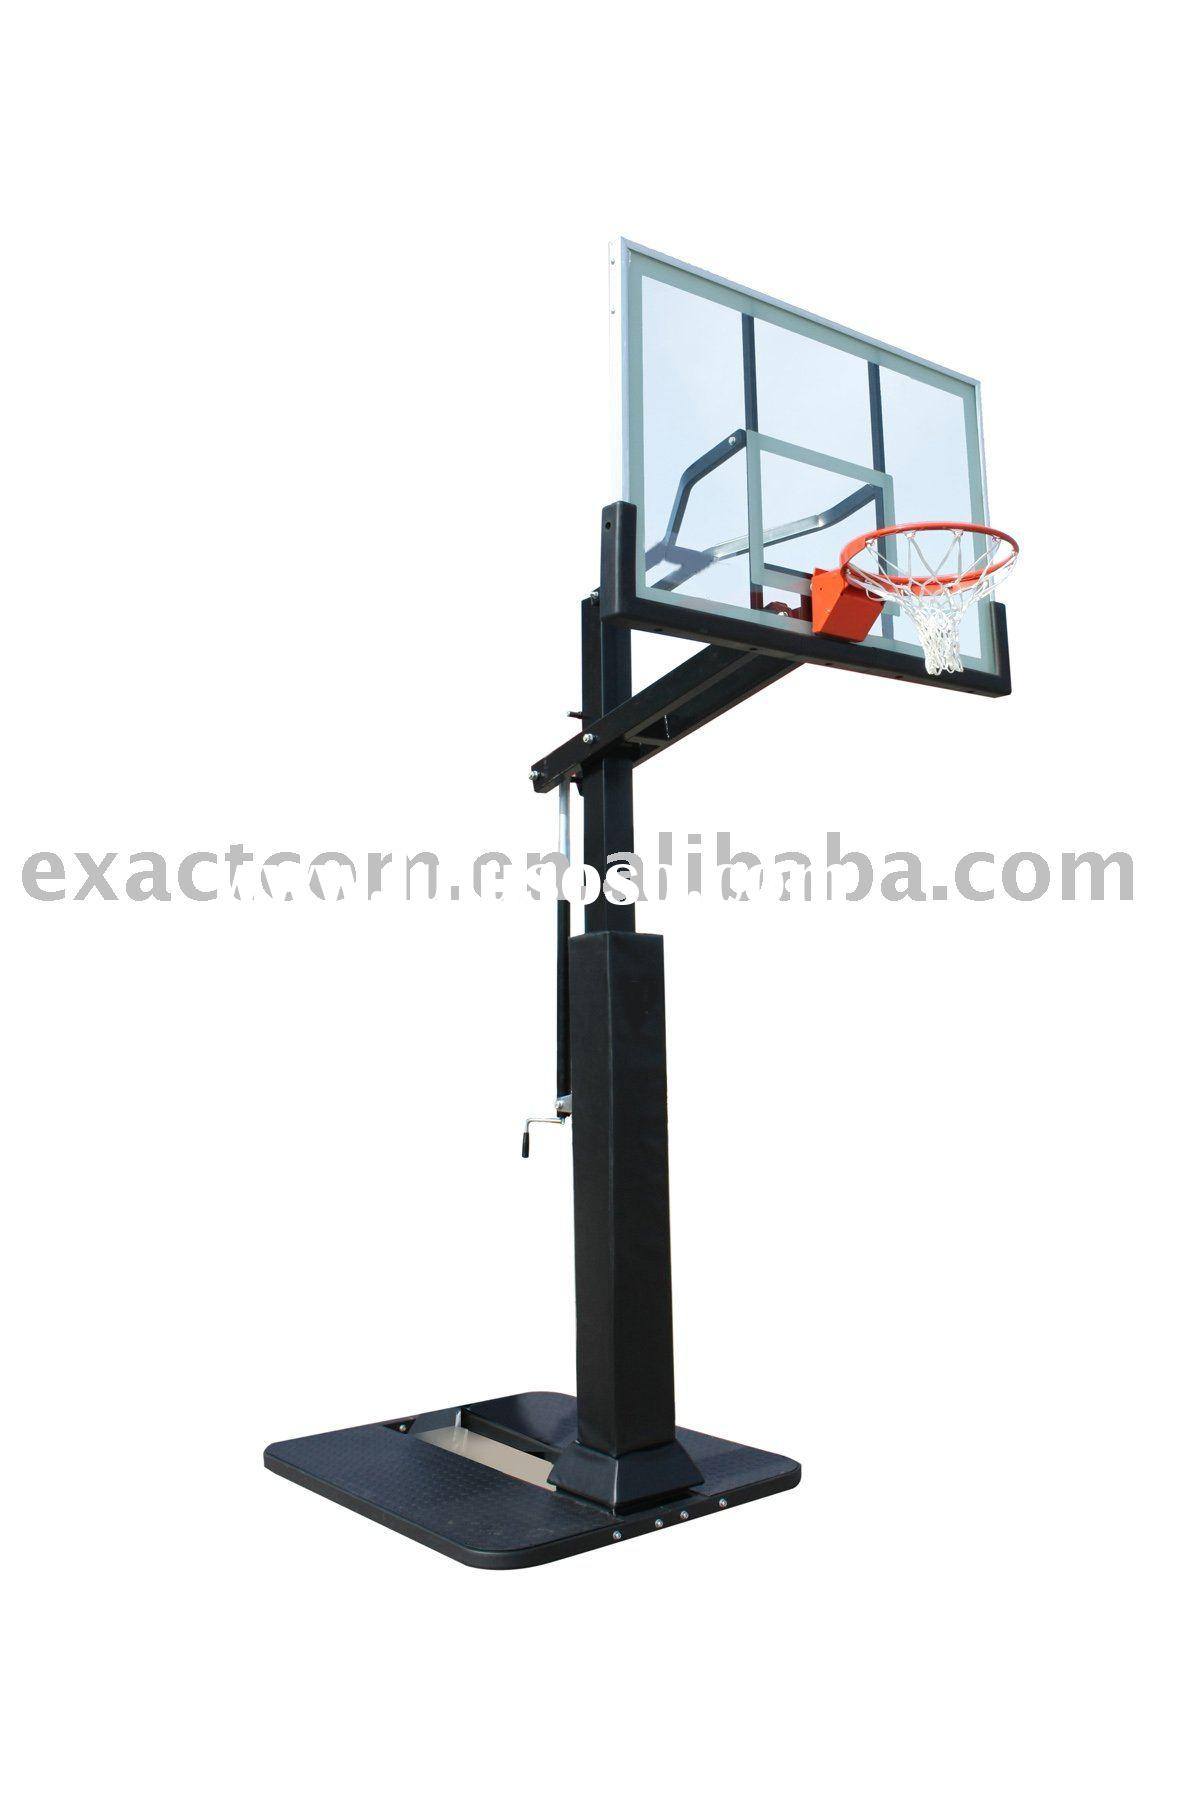 Height adjustable outdoor basketball stands